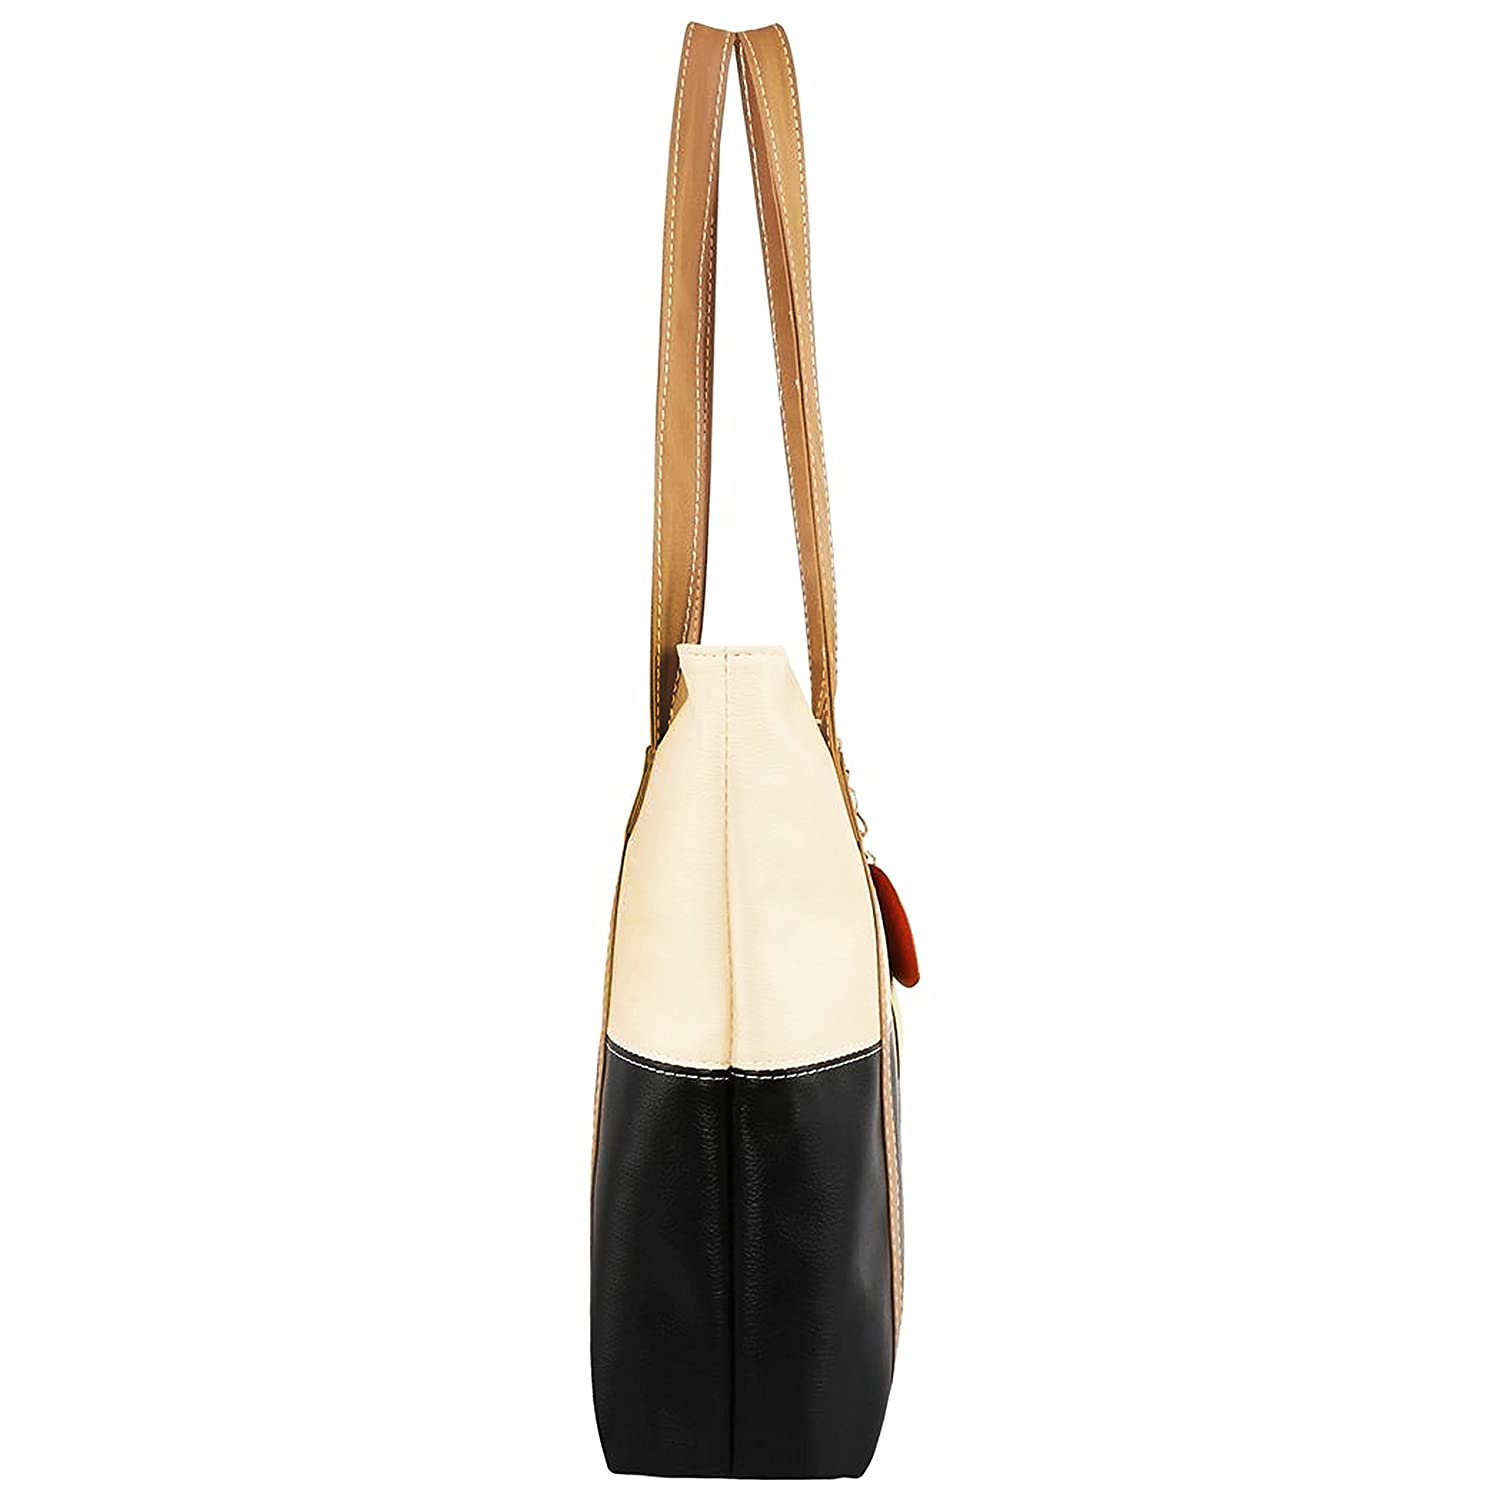 Amazon.com   Minch Cute Mixed Color Pu Leather Designer Purses and Handbags  for Women Work on (Apricot-Black)...   Sports   Outdoors 52d4fcfa6d